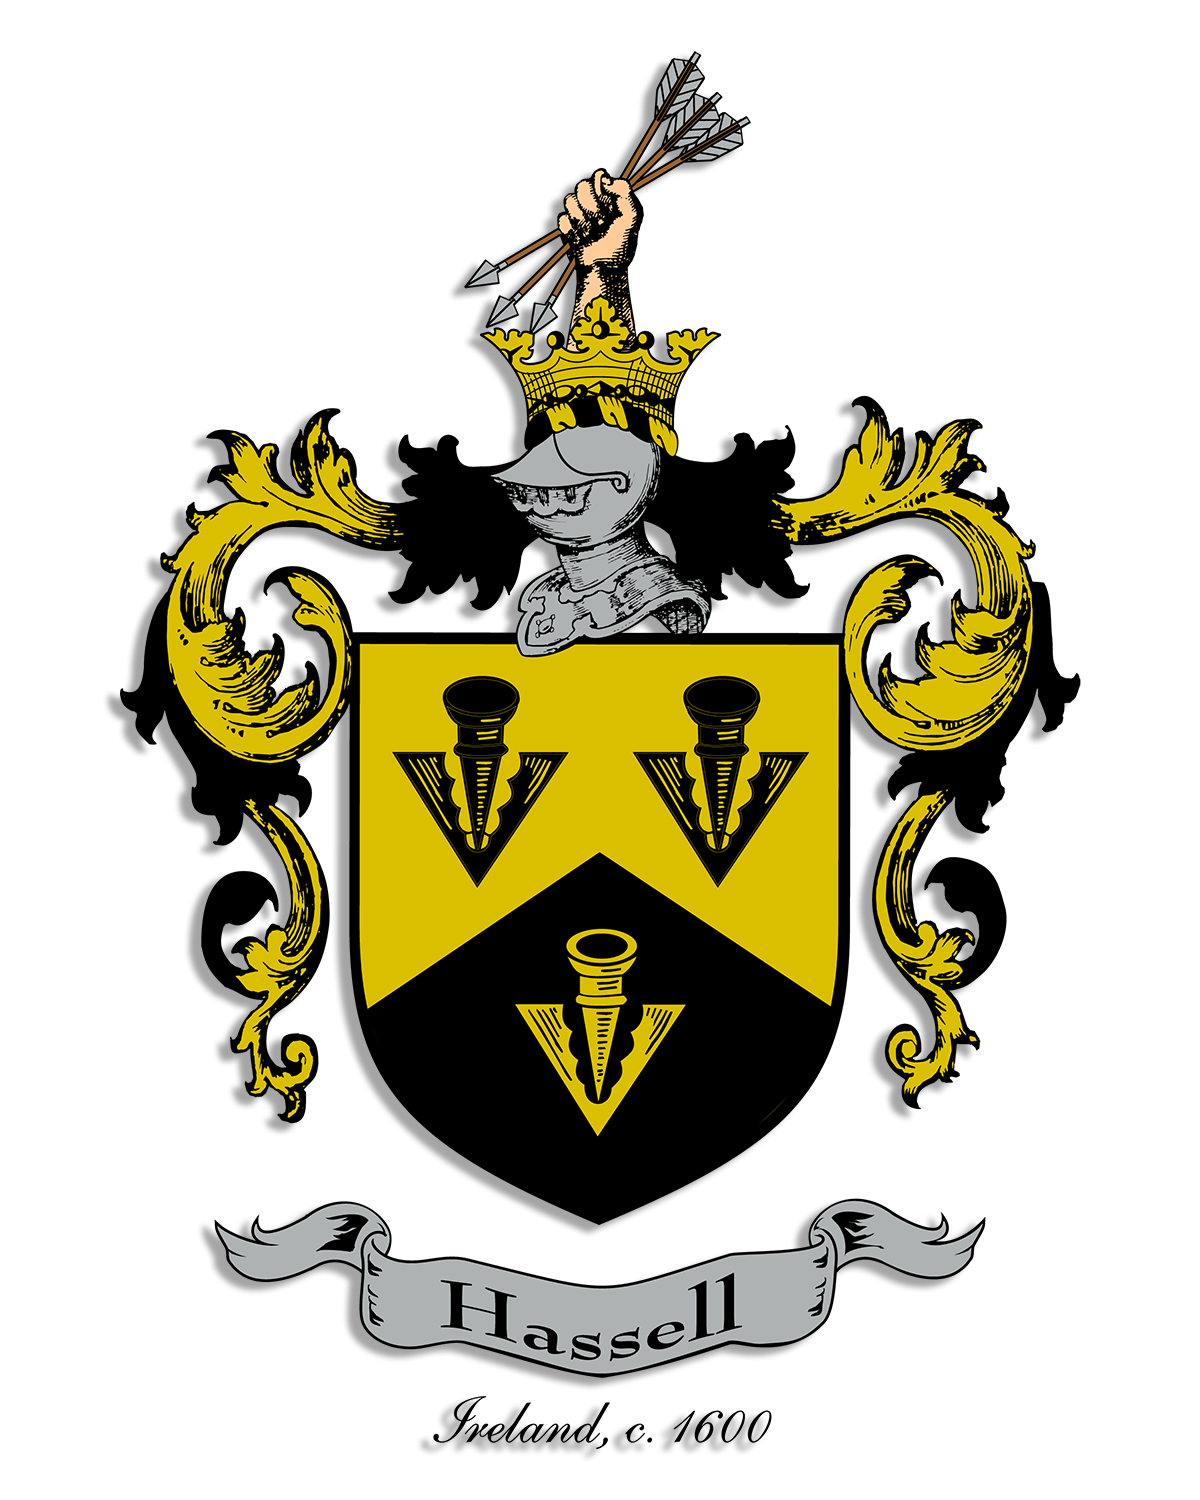 Fleur de lis designs hassell coat of arms and crest designs hassell coats of arms and crests buycottarizona Images